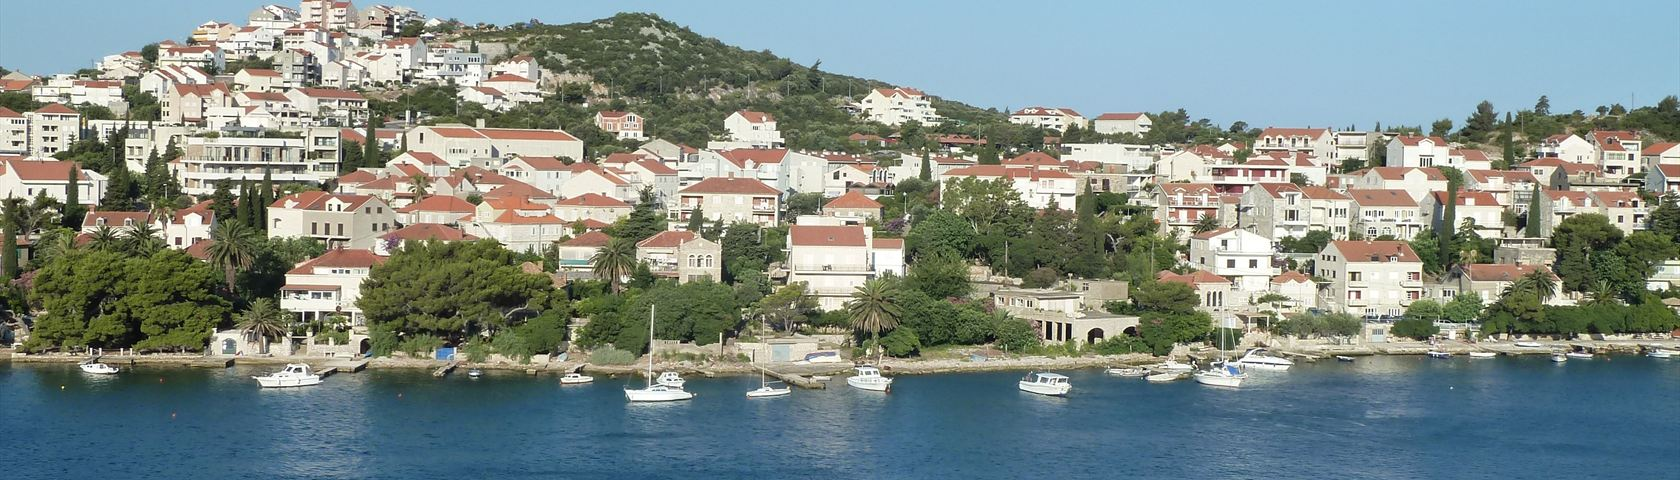 Shoreside Homes of Dubrovnik